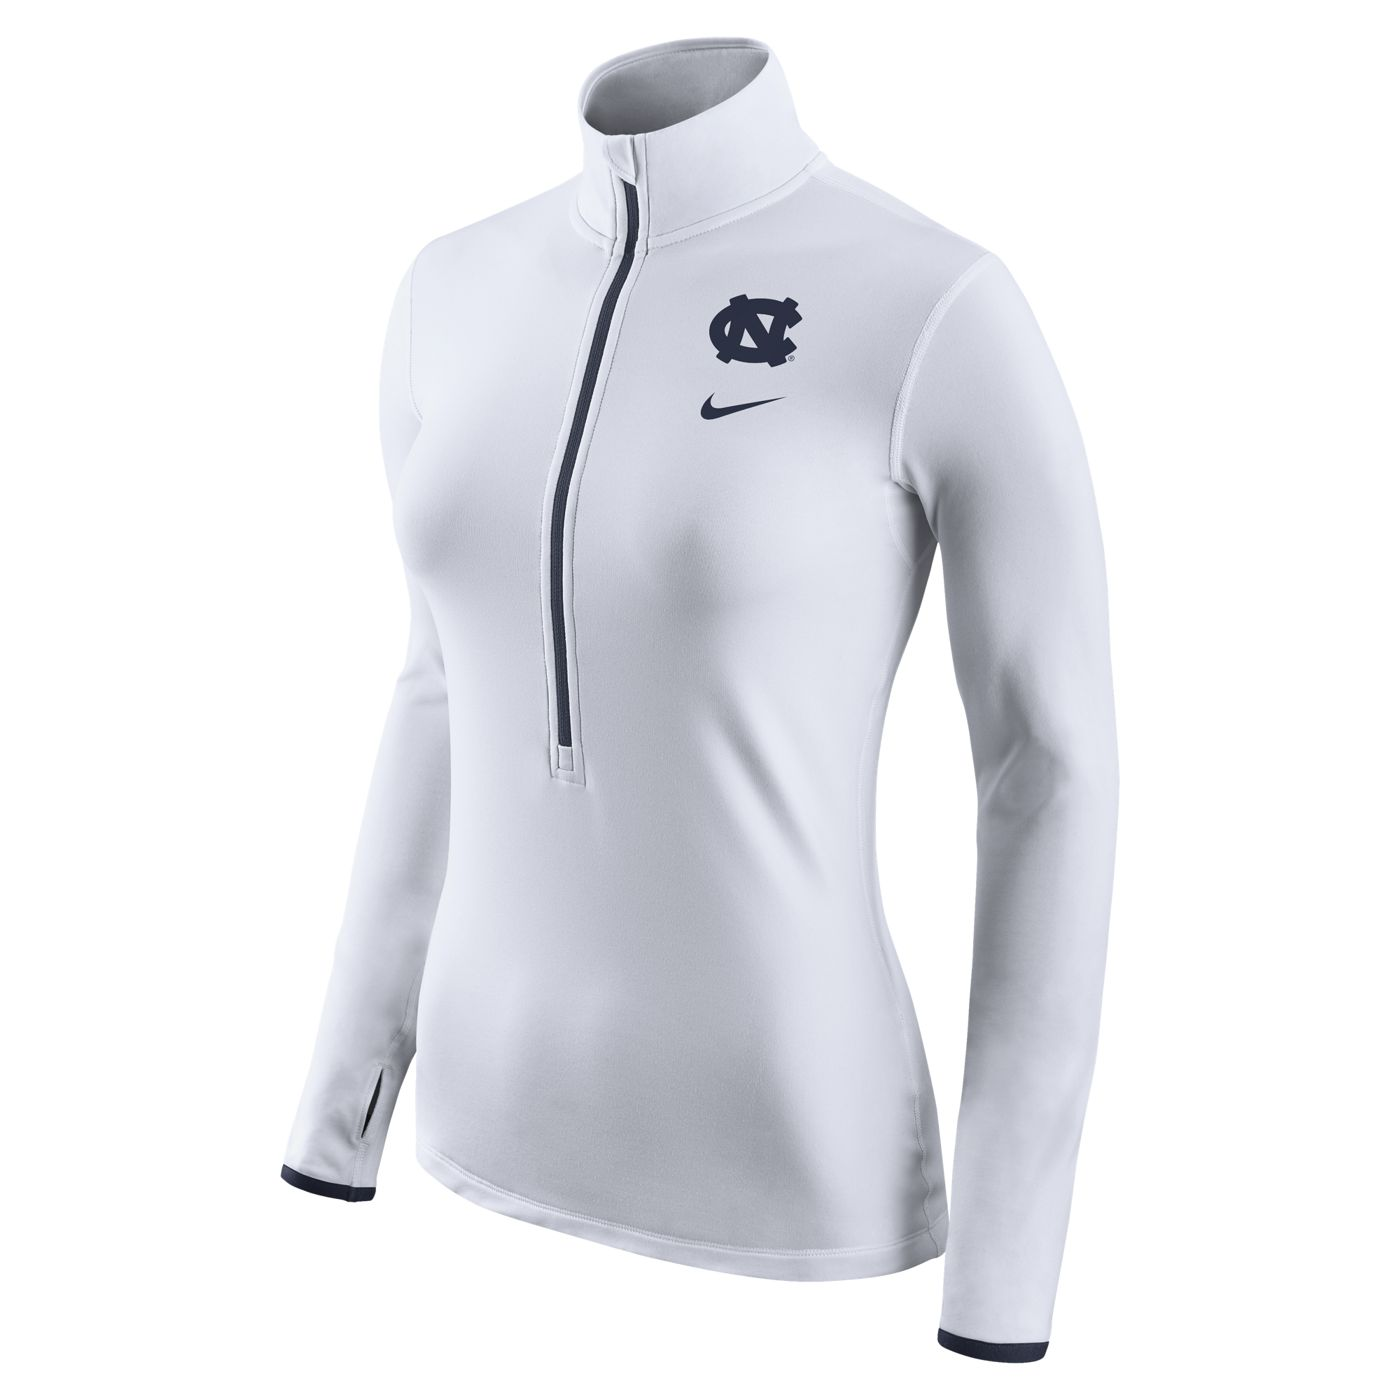 watch afd6f 6e7b1 Nike Ladies' Pro HyperWarm 1/2-Zip Pullover (White) by Nike